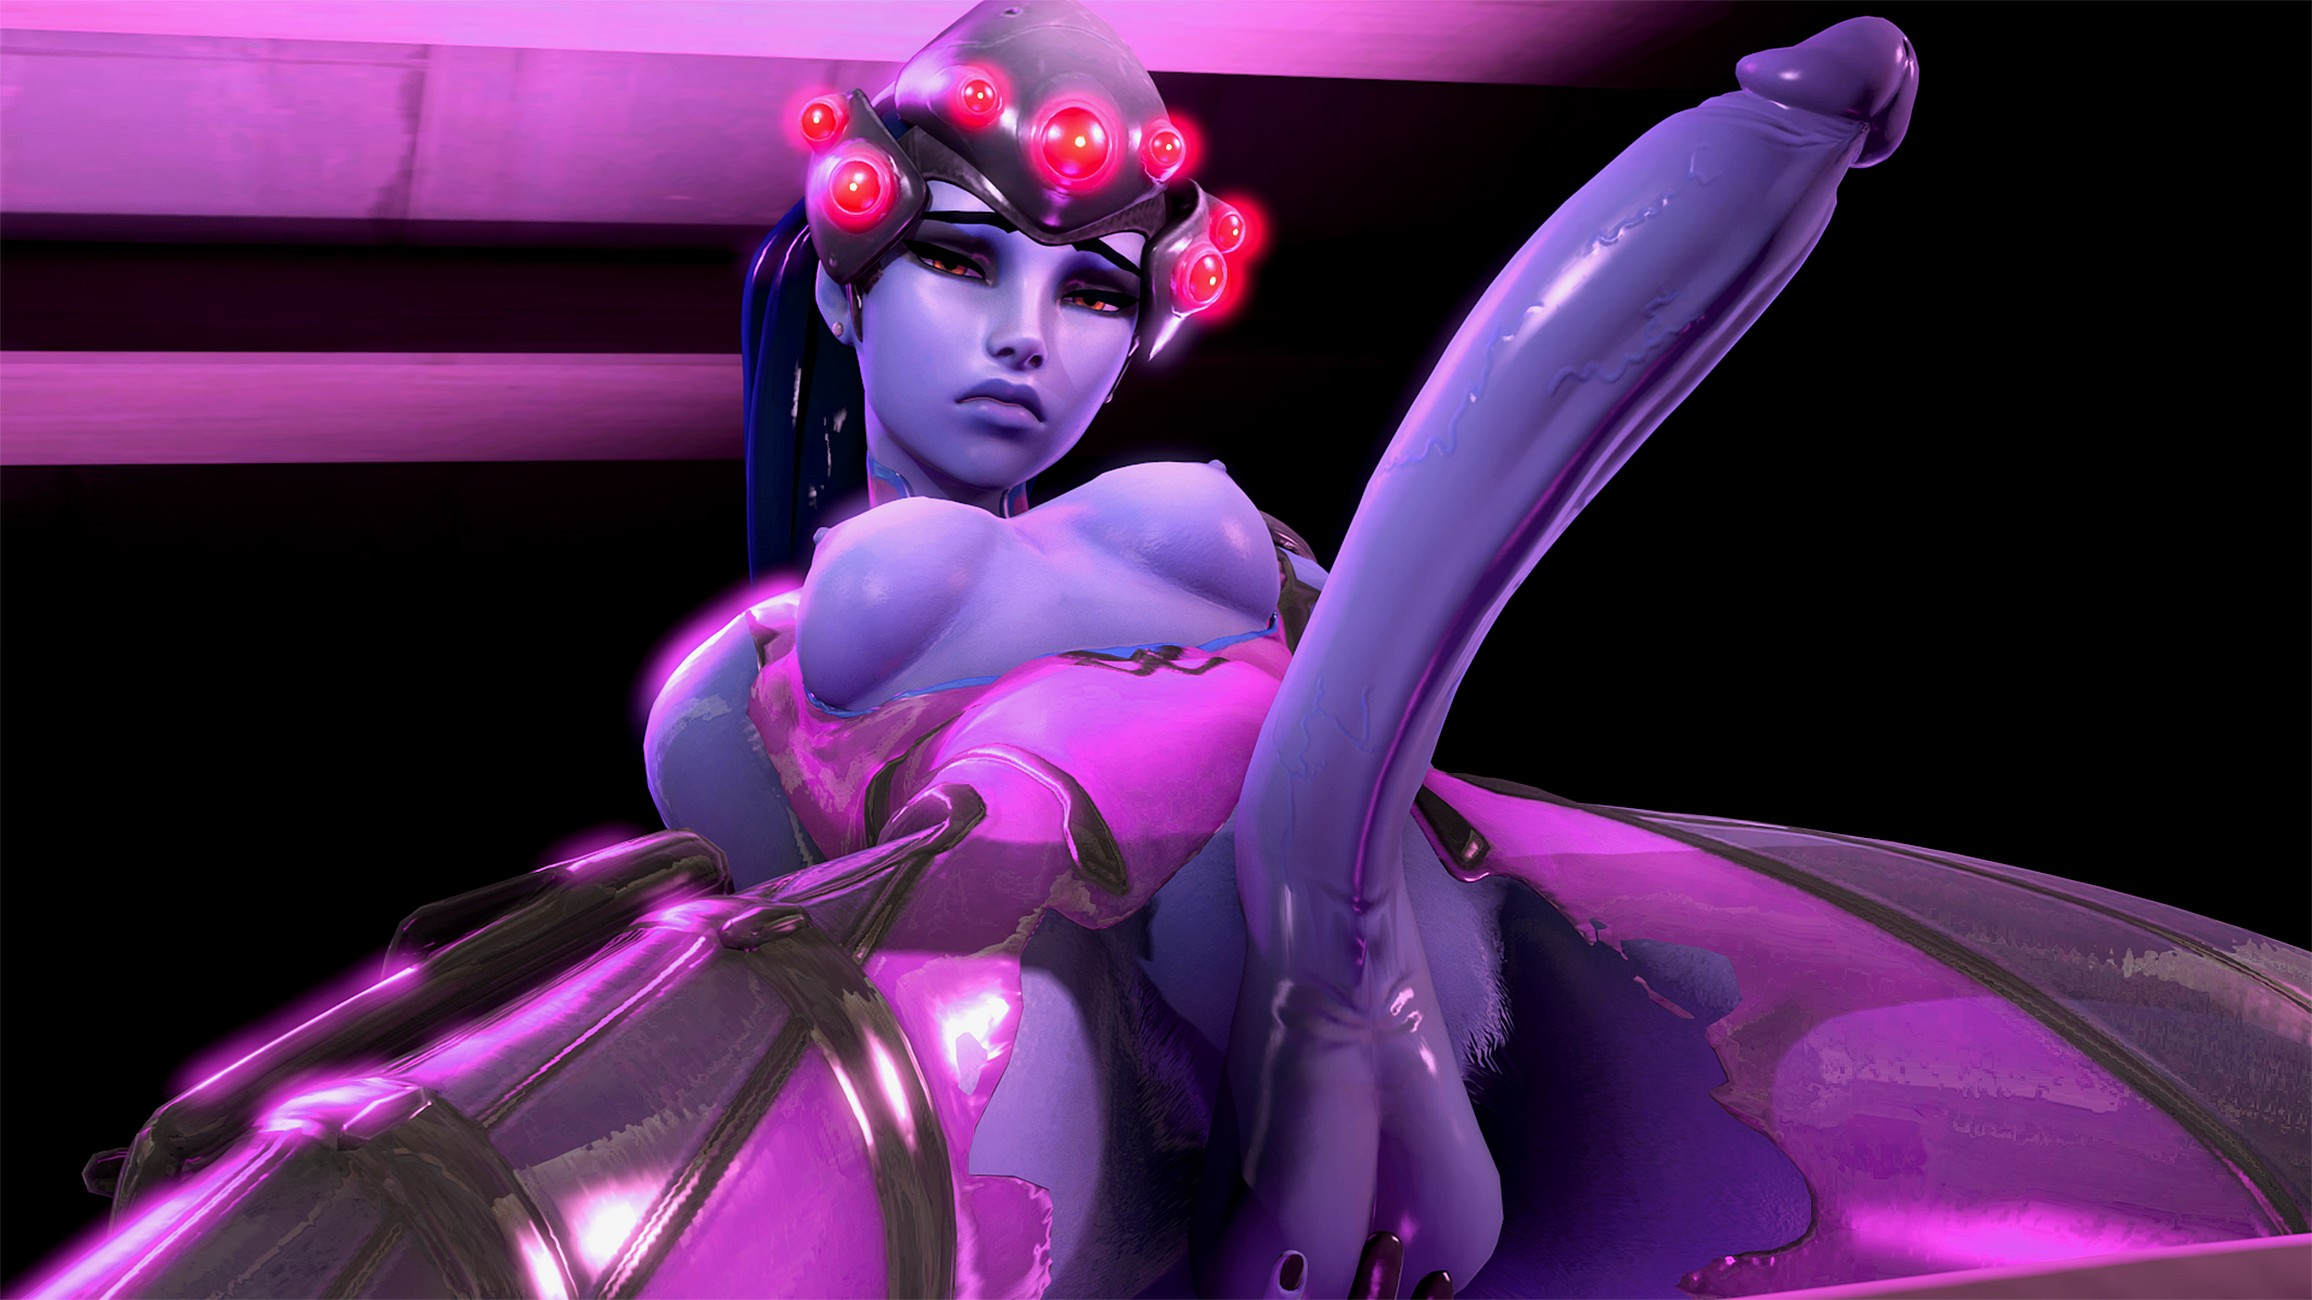 Overwatch Futa Widowmaker Hentai | Futapo!